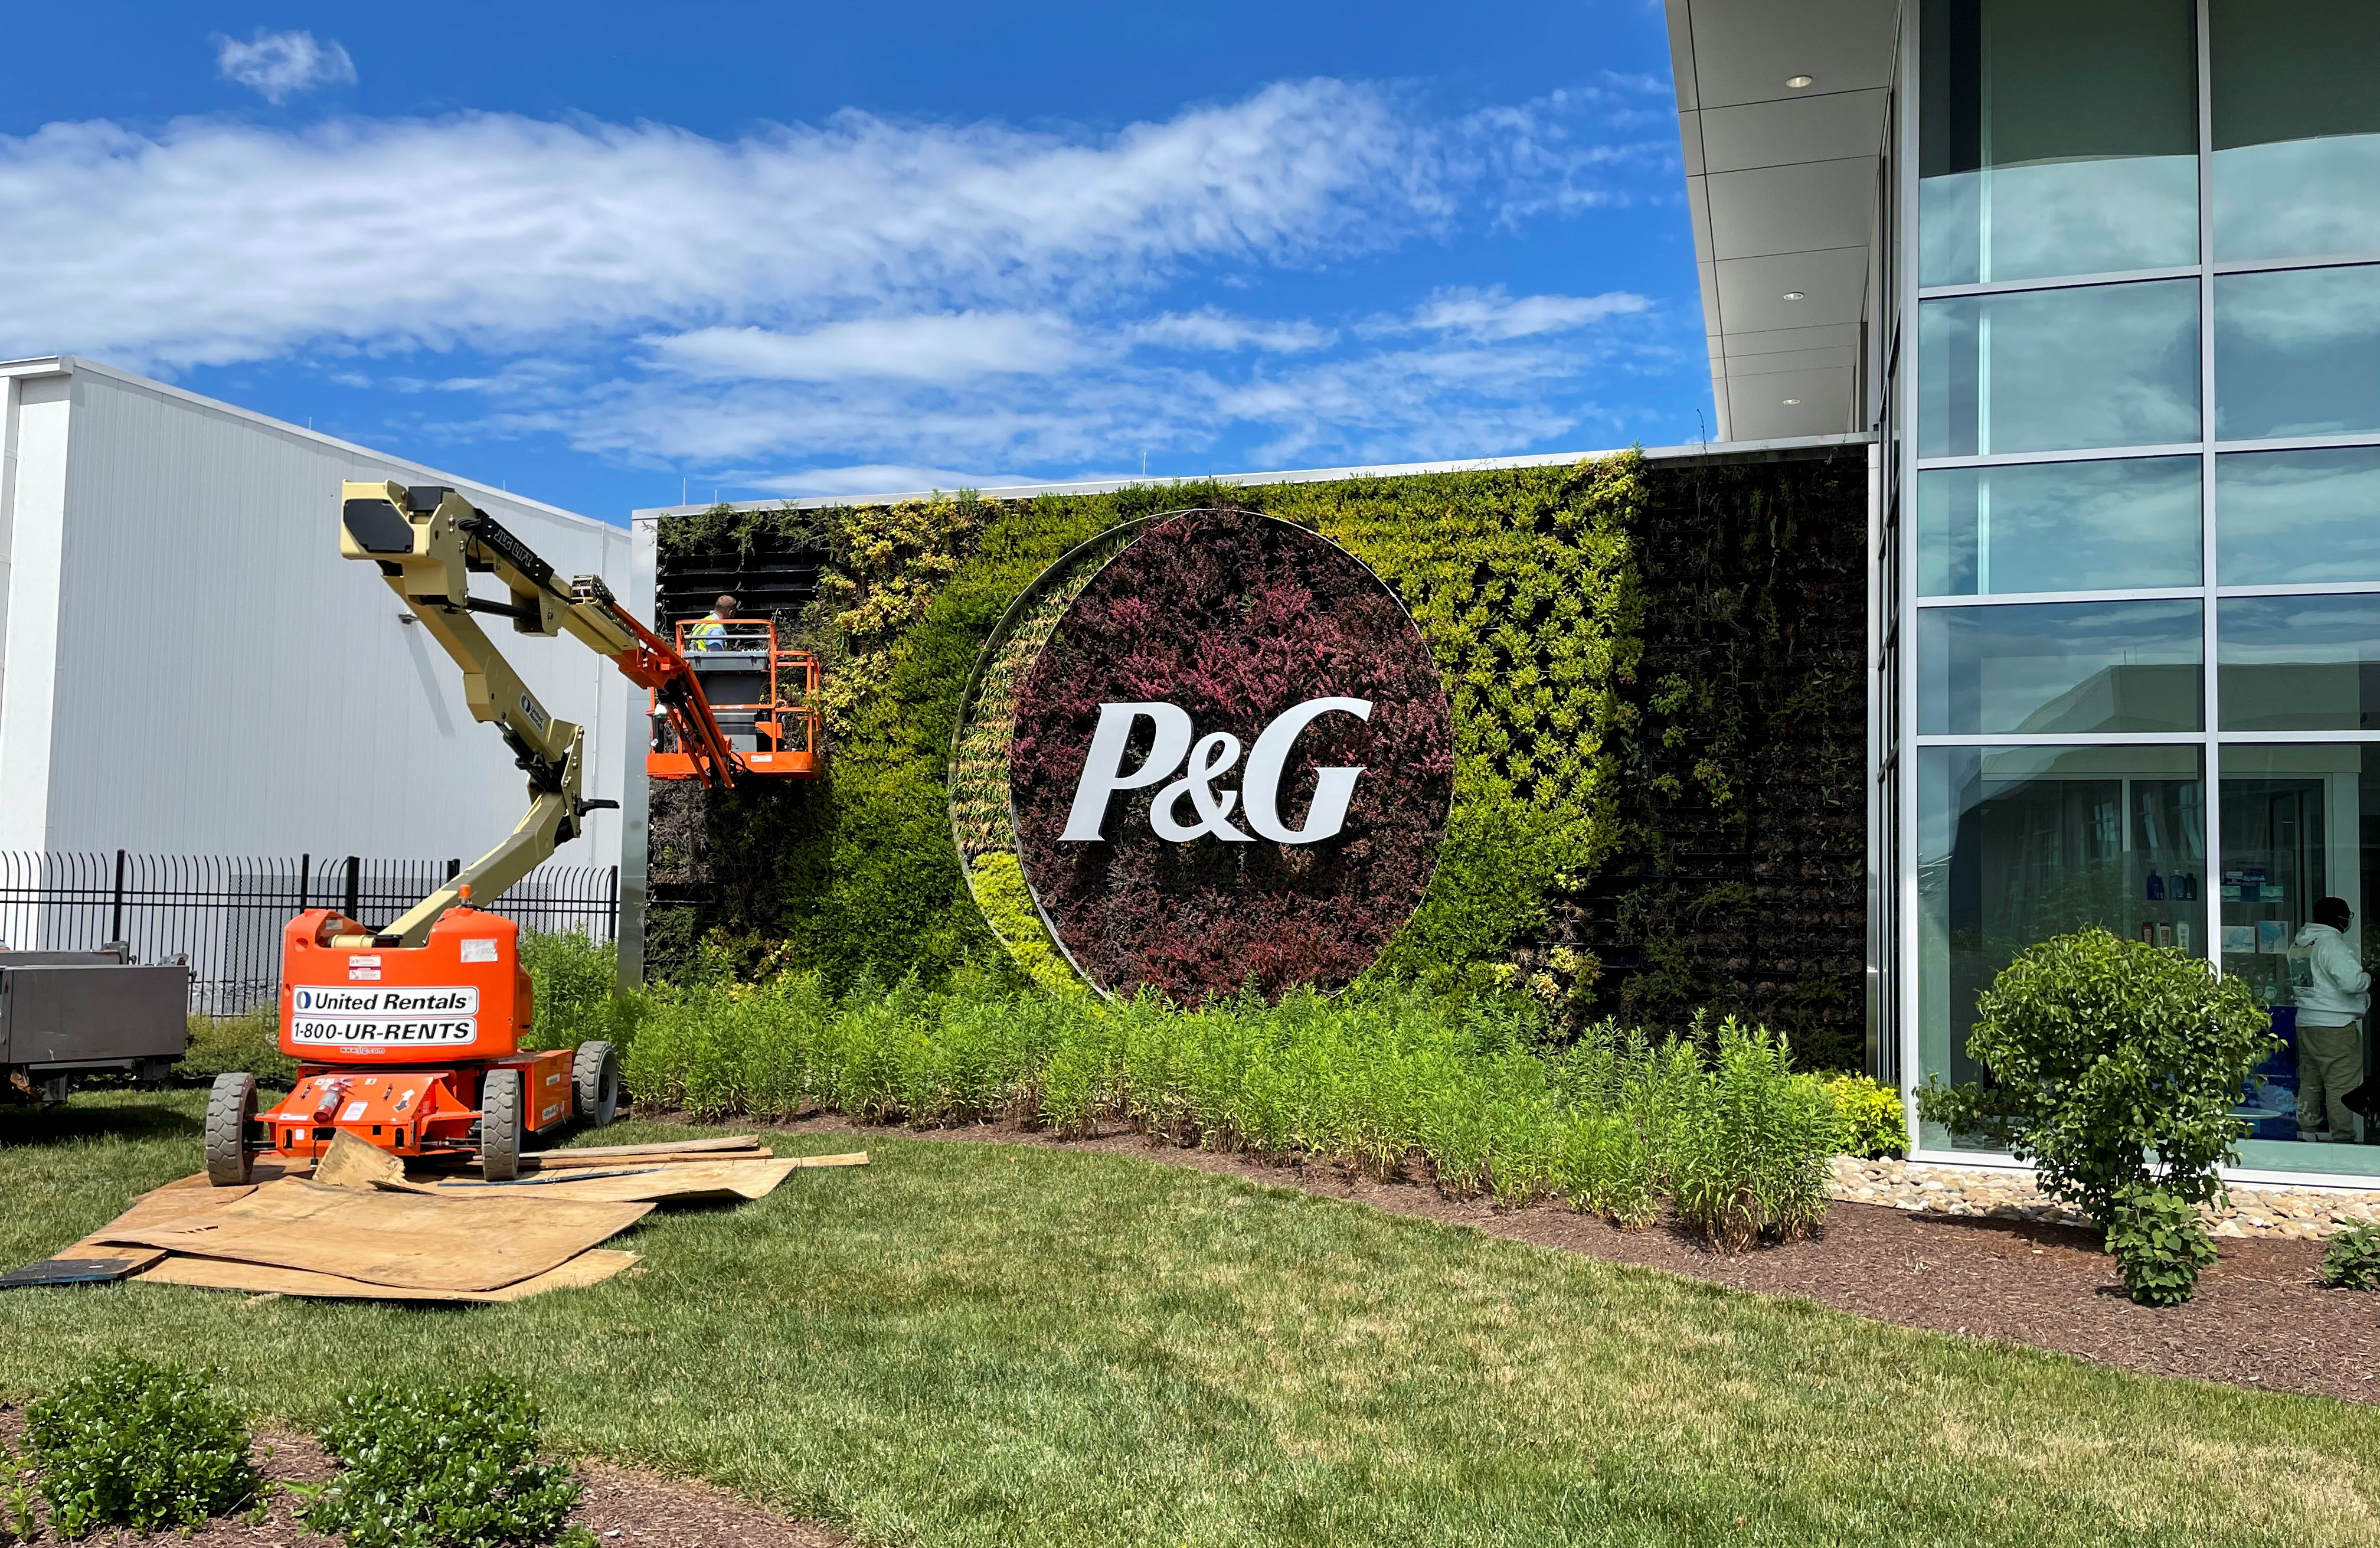 A plant wall with Procter & Gamble's logo is pictured at the entrance to the company's highly automated cleaning products factory in Tabler Station, West Virginia, U.S., May 28, 2021. Picture taken May 28, 2021. REUTERS/Timothy Aeppel